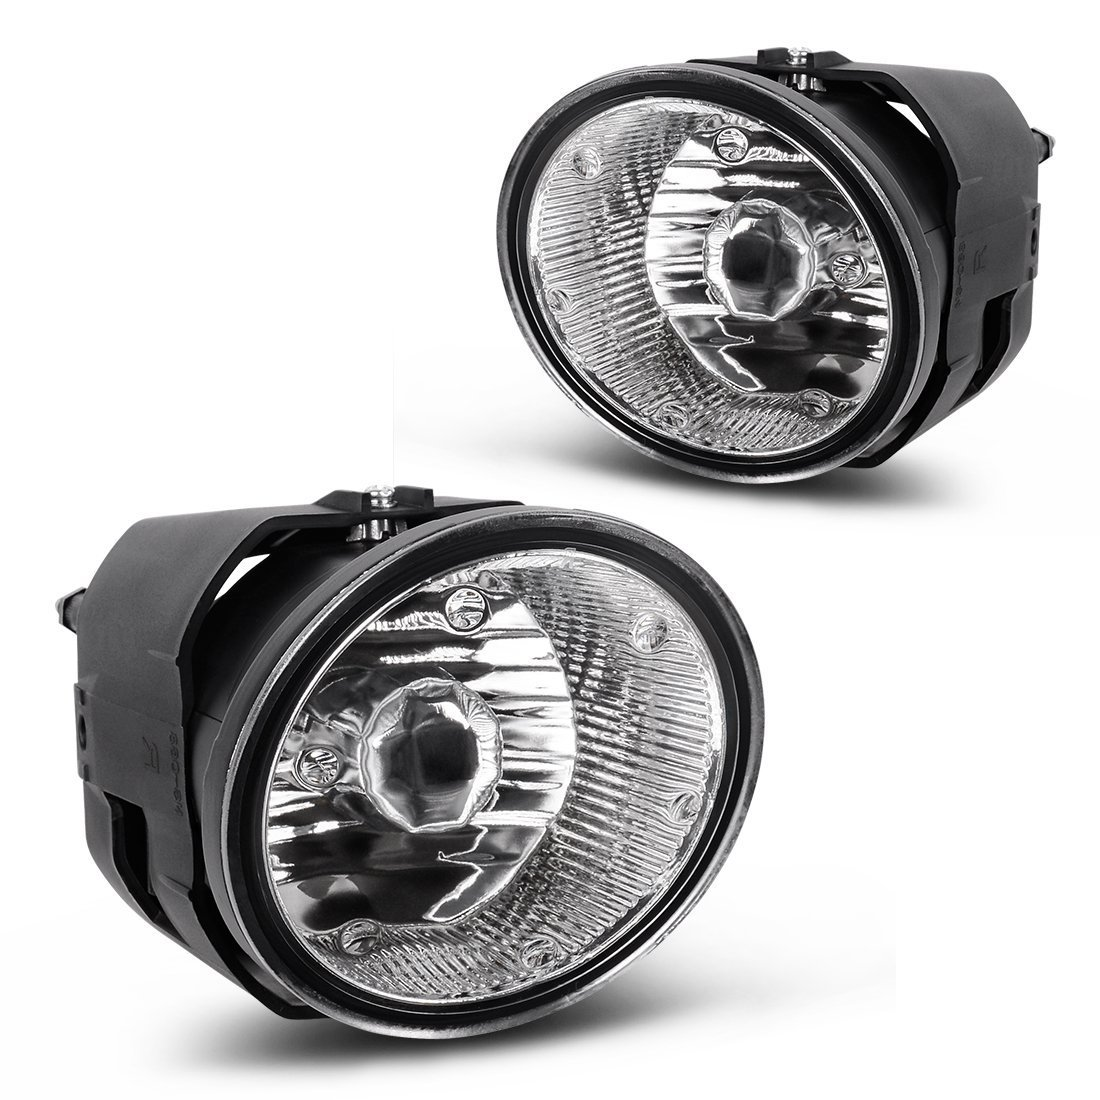 Cheap Nissan Xterra Fog Lights, find Nissan Xterra Fog Lights deals on fog light grille, fog light cover, camaro fog light harness, fog lights kit chevy, fog light yellow paint, fog light resistor, fog light bracket, fog light accessories, tail light pigtail harness, fog light computer, fog light bulbs, fog light hood, fog light glass, motor harness, speed sensor harness, fog light switches, pontiac g6 low beam harness, fog light bumper, fog light connectors, fog lights for cars,